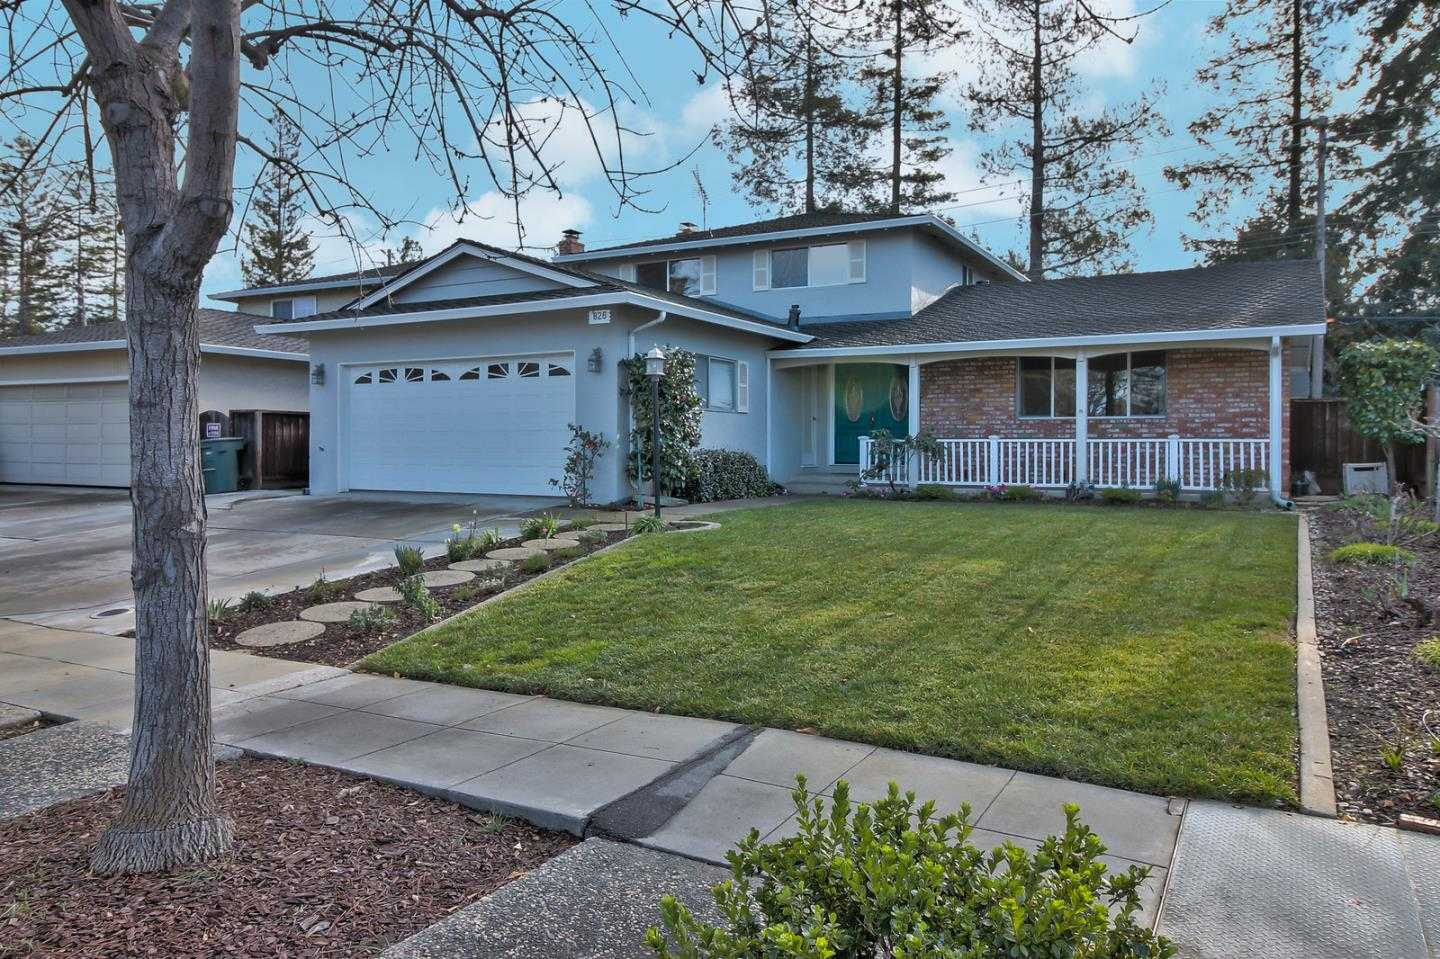 $1,826,000 - 4Br/2Ba -  for Sale in Sunnyvale